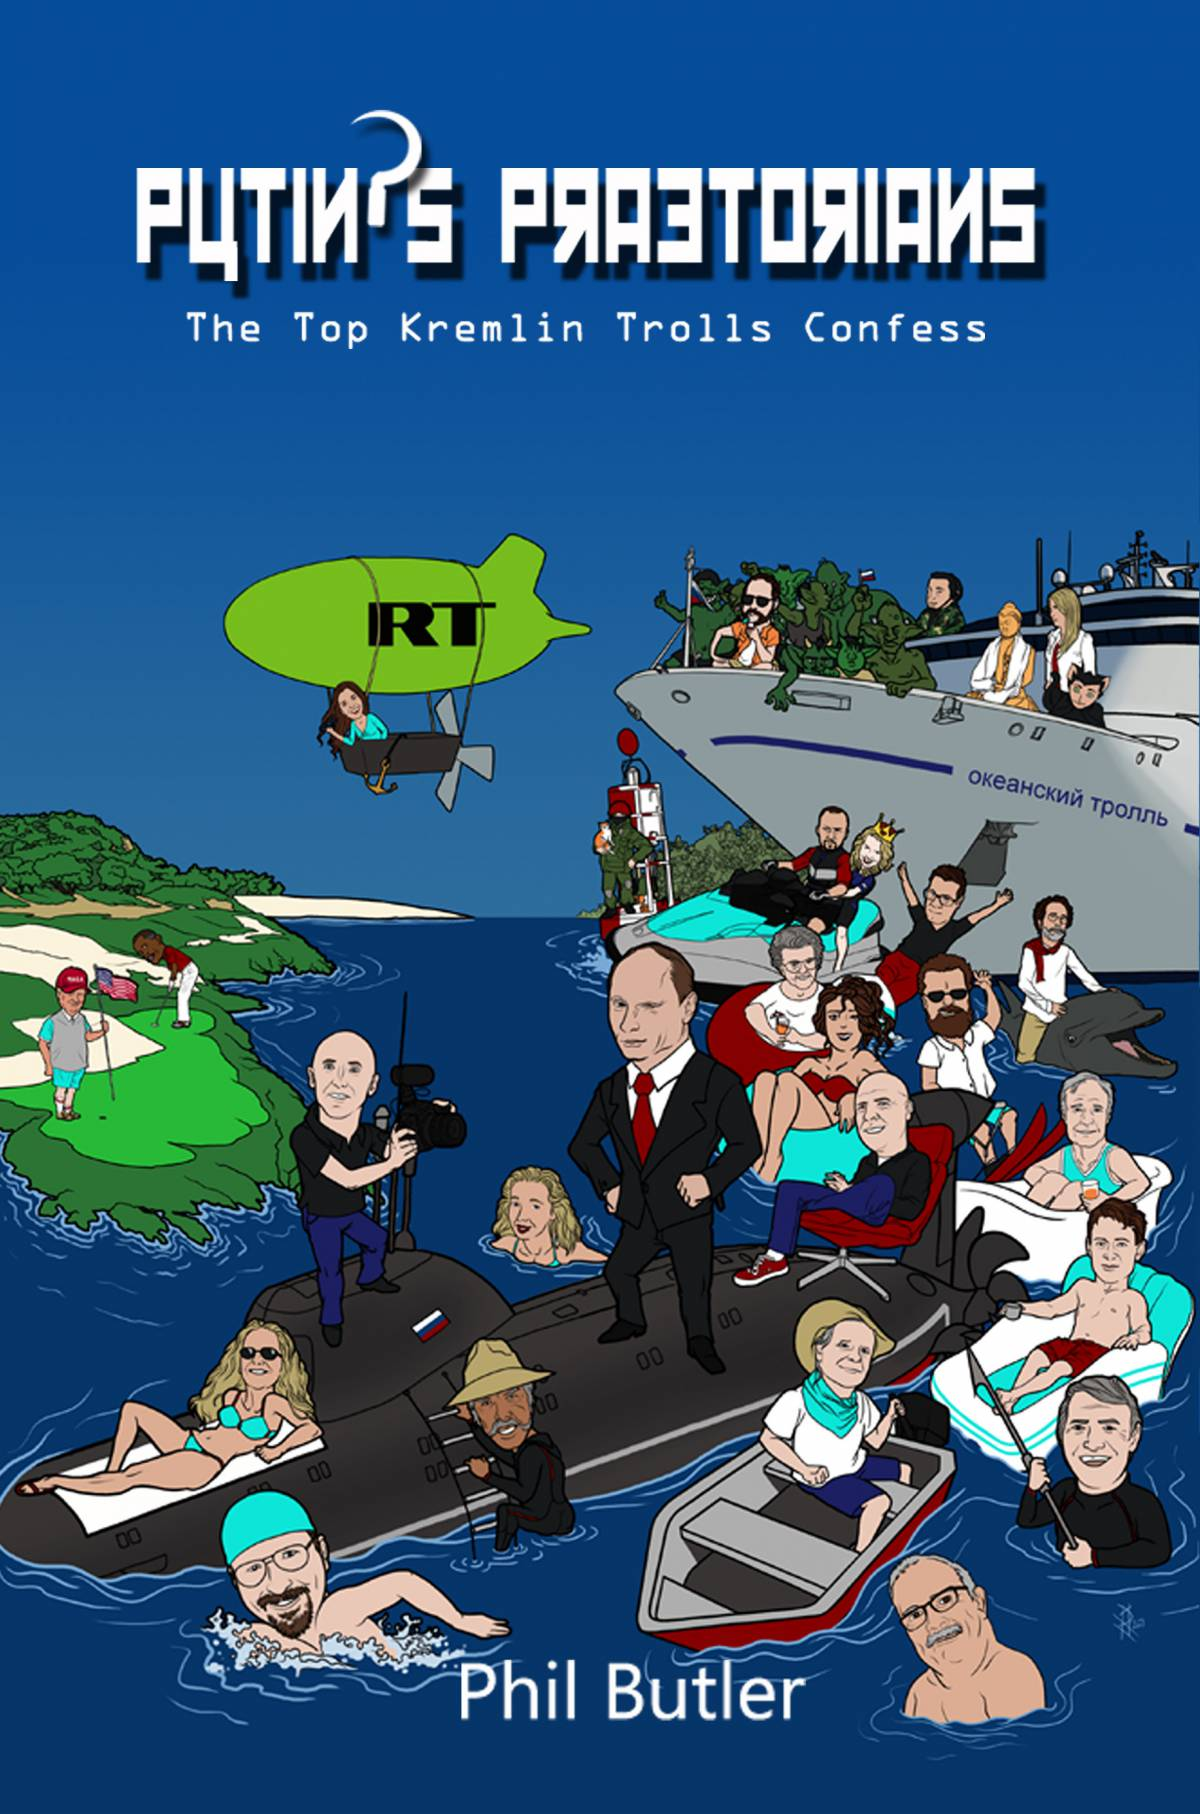 The Saker Reviews: Putin's Praetorians: Confessions of the Top Kremlin Trolls by Phil Butler